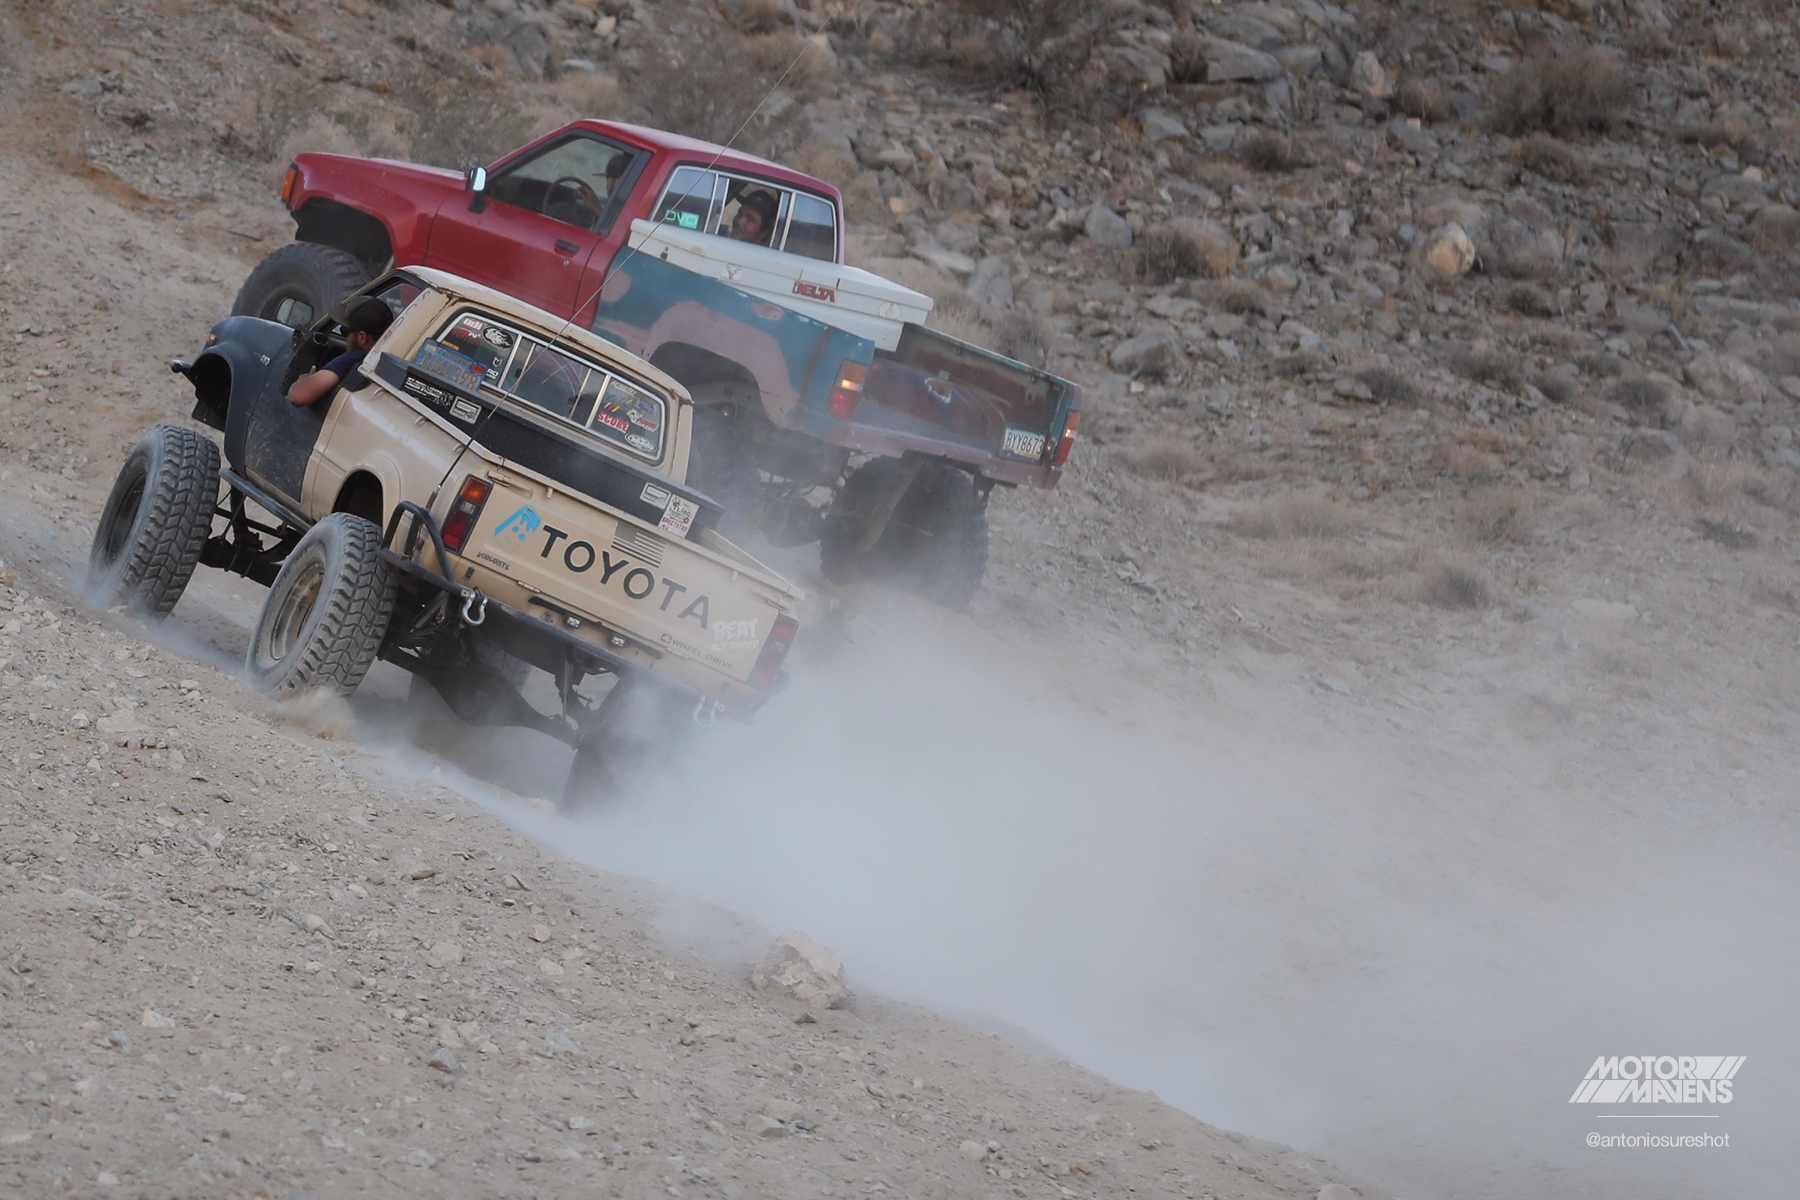 Toyota Pickup 4wd, King of the Hammers, hammertown, nitto tires